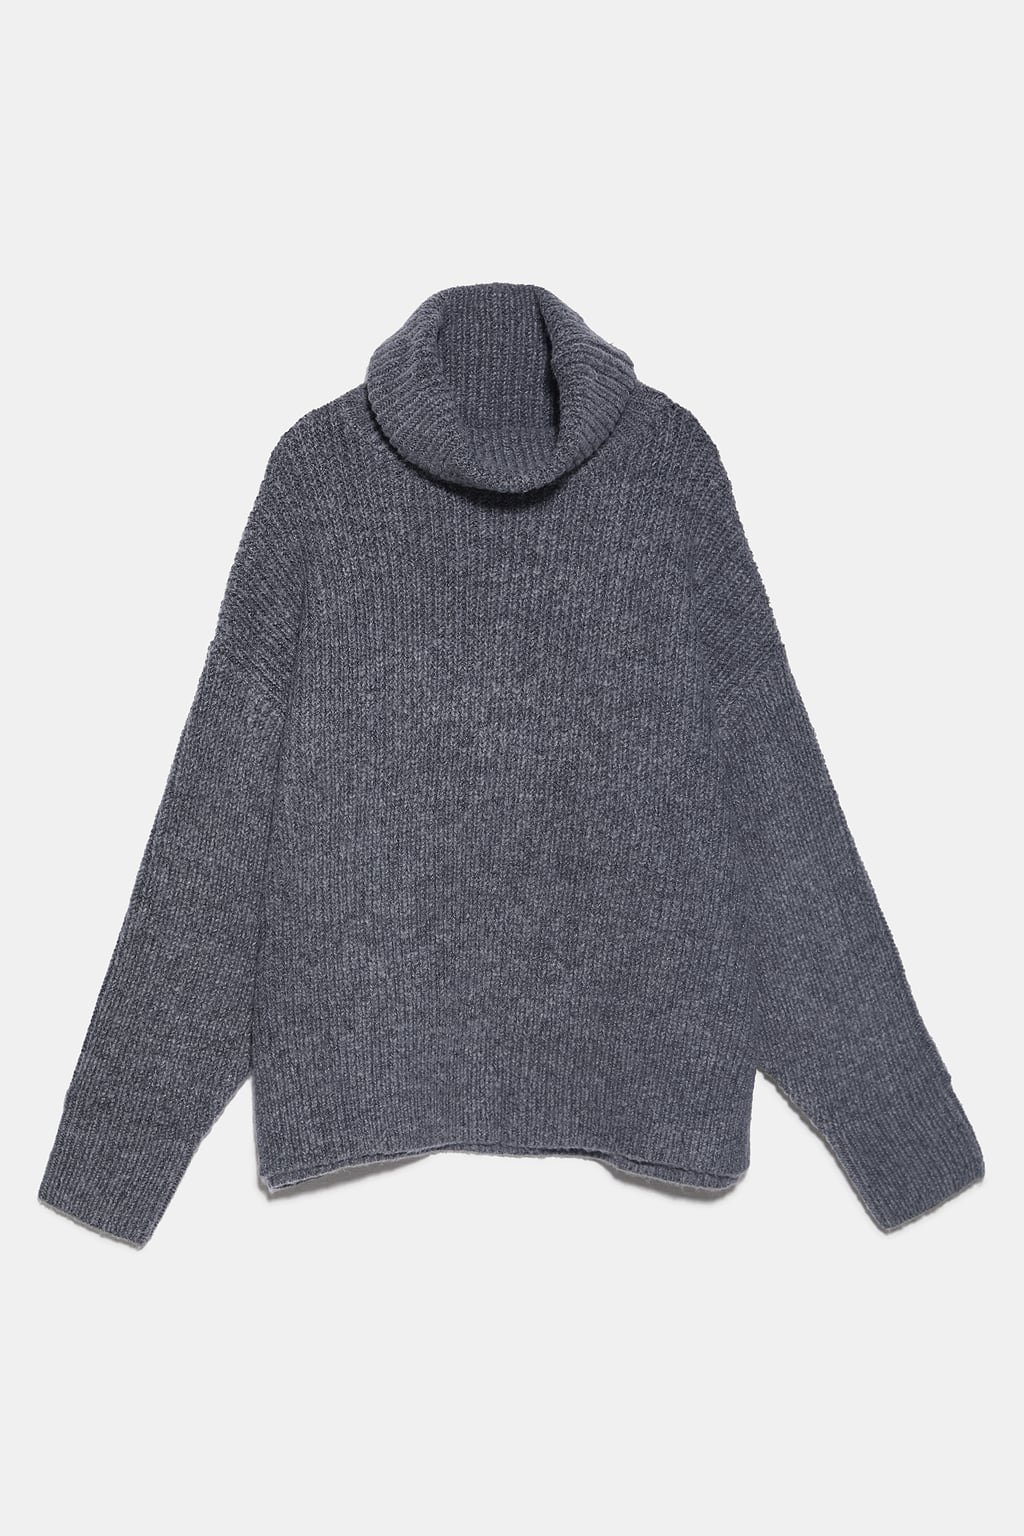 OVERSIZED WOOL AND ALPACA BLEND SWEATER - NEW IN-WOMAN   ZARA United States